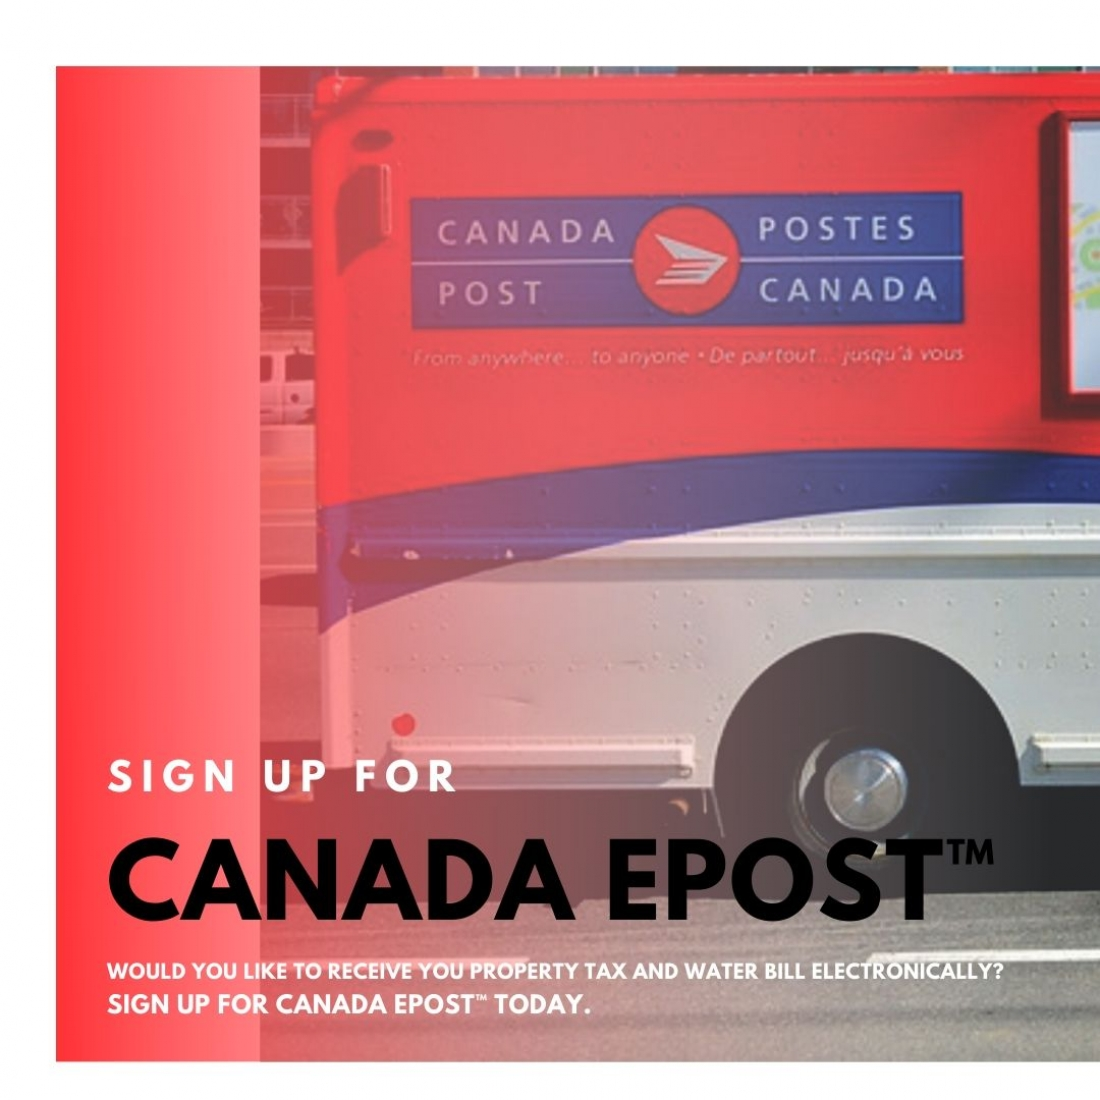 Canada Post Epost Services